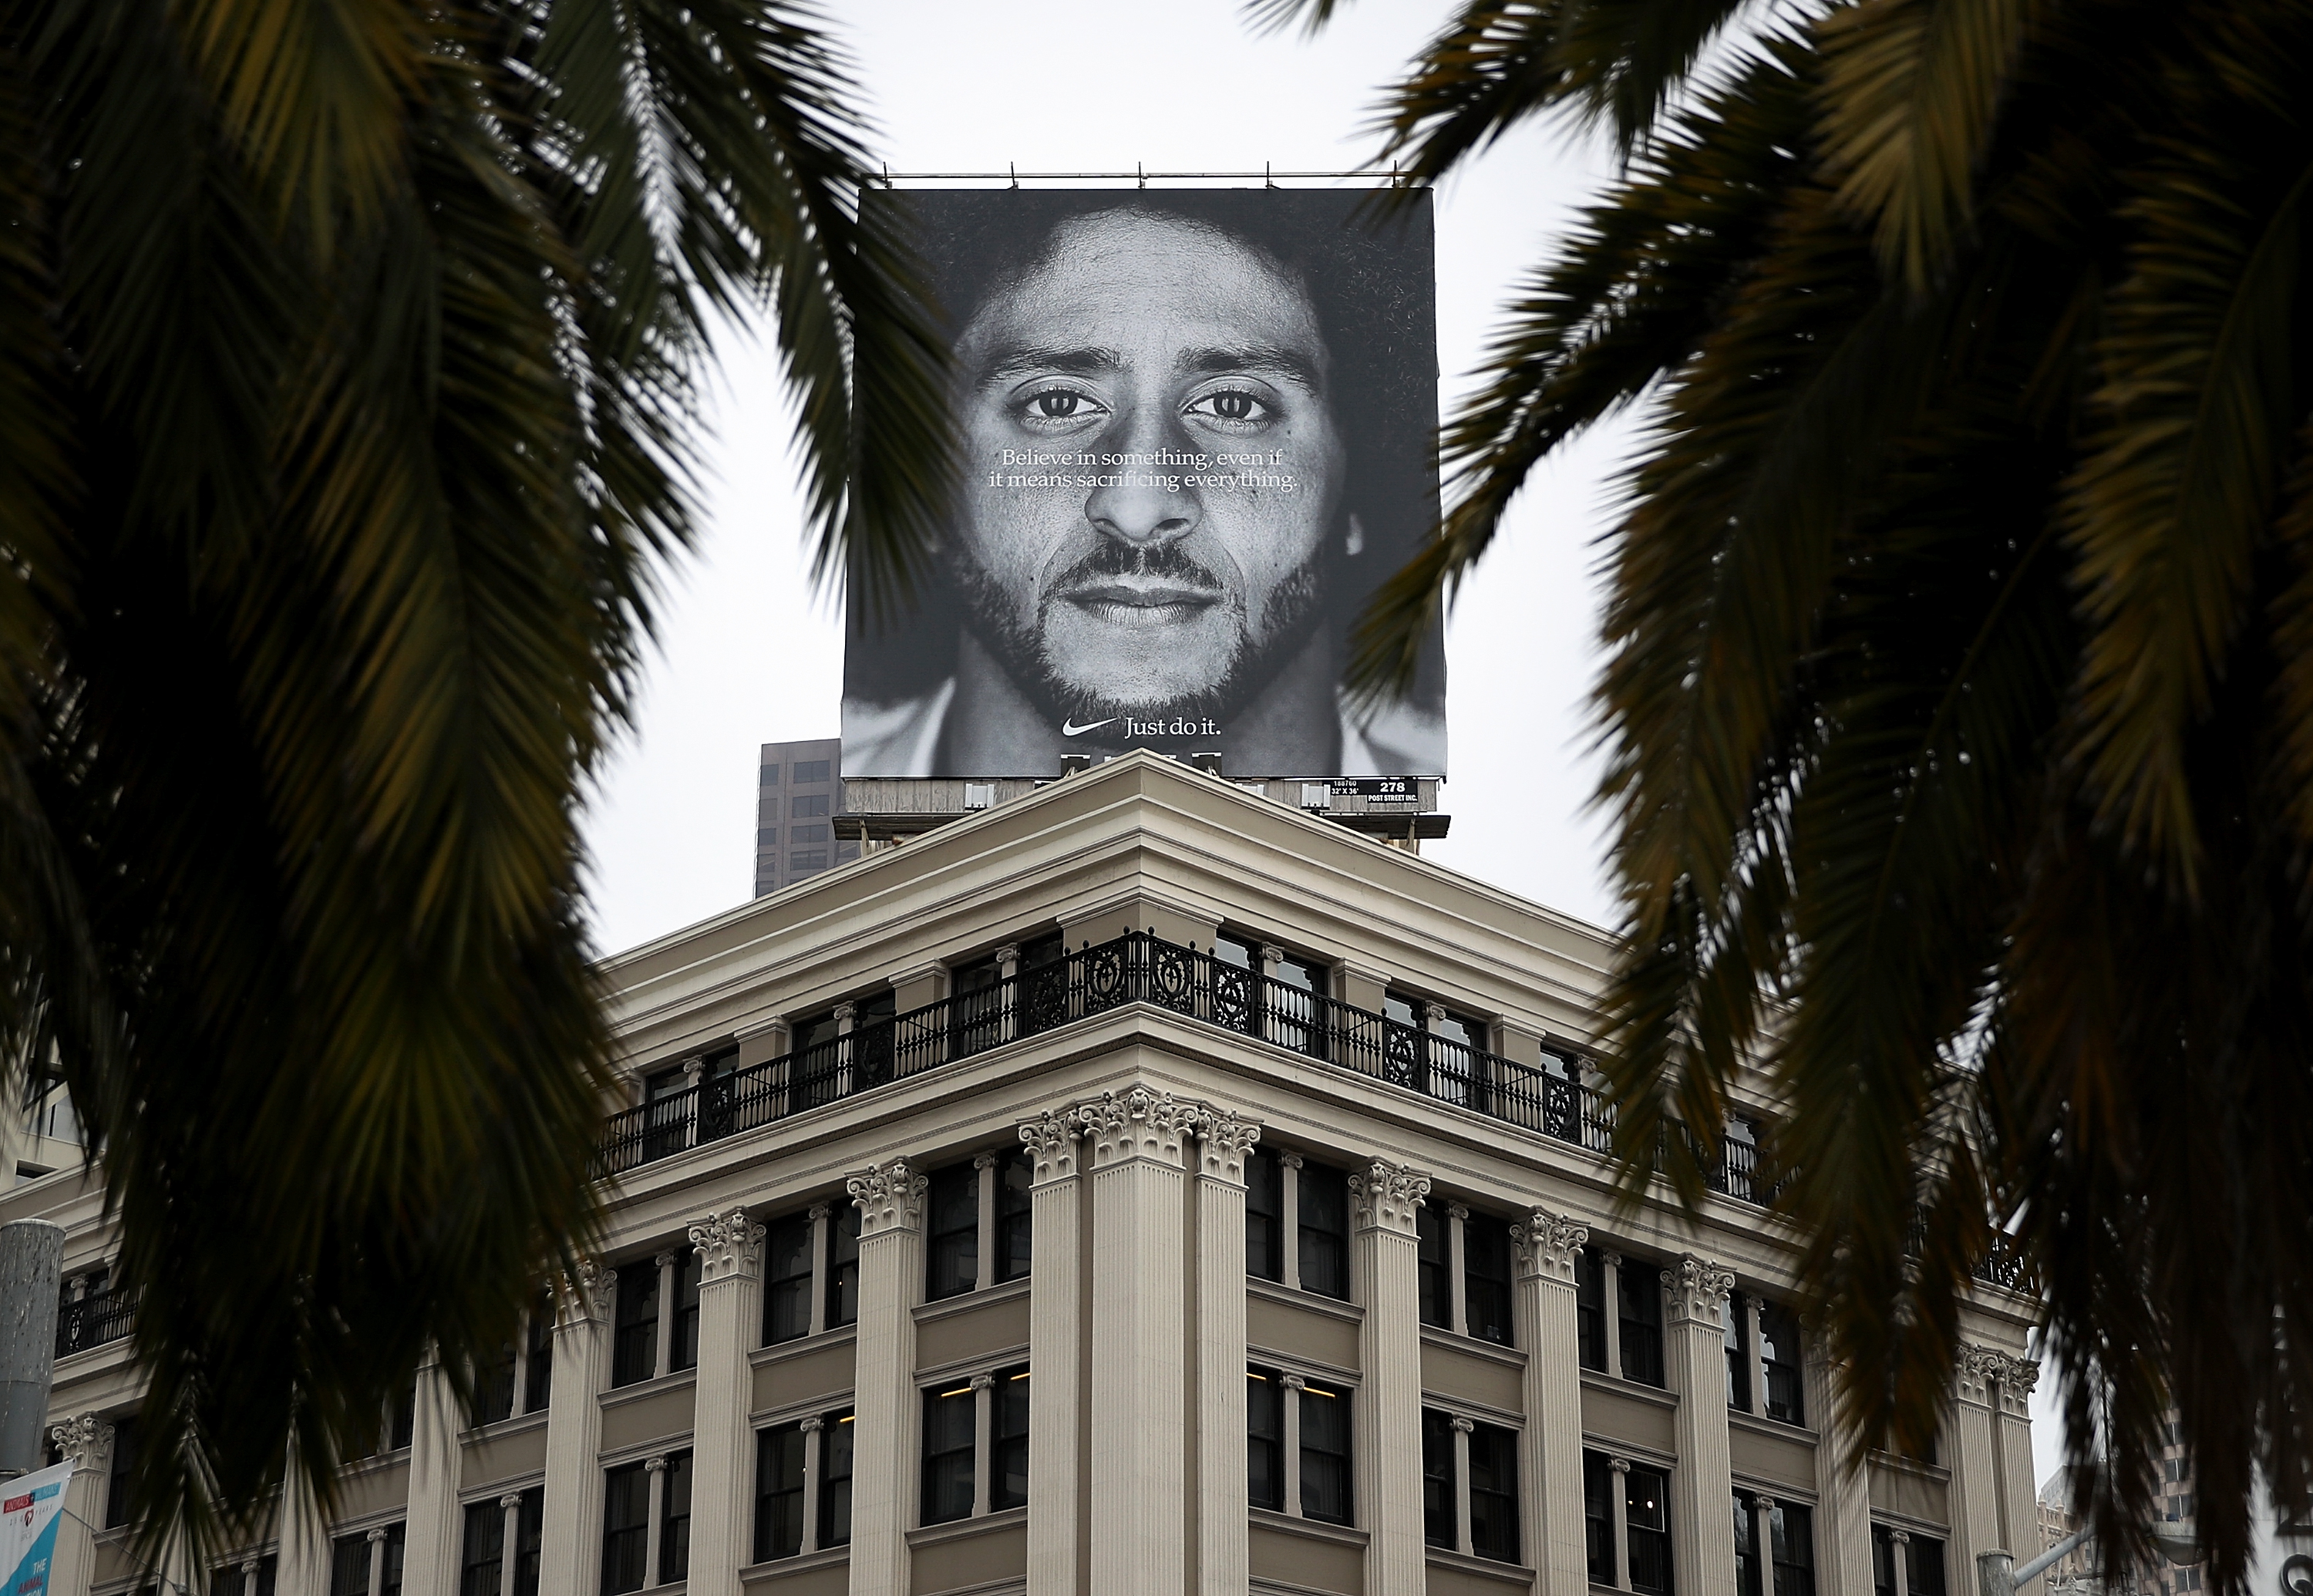 A billboard featuring former San Francisco 49ers quarterback Colin Kaepernick is displayed on the roof of the Nike Store on September 5, 2018, in San Francisco, California. (Getty)